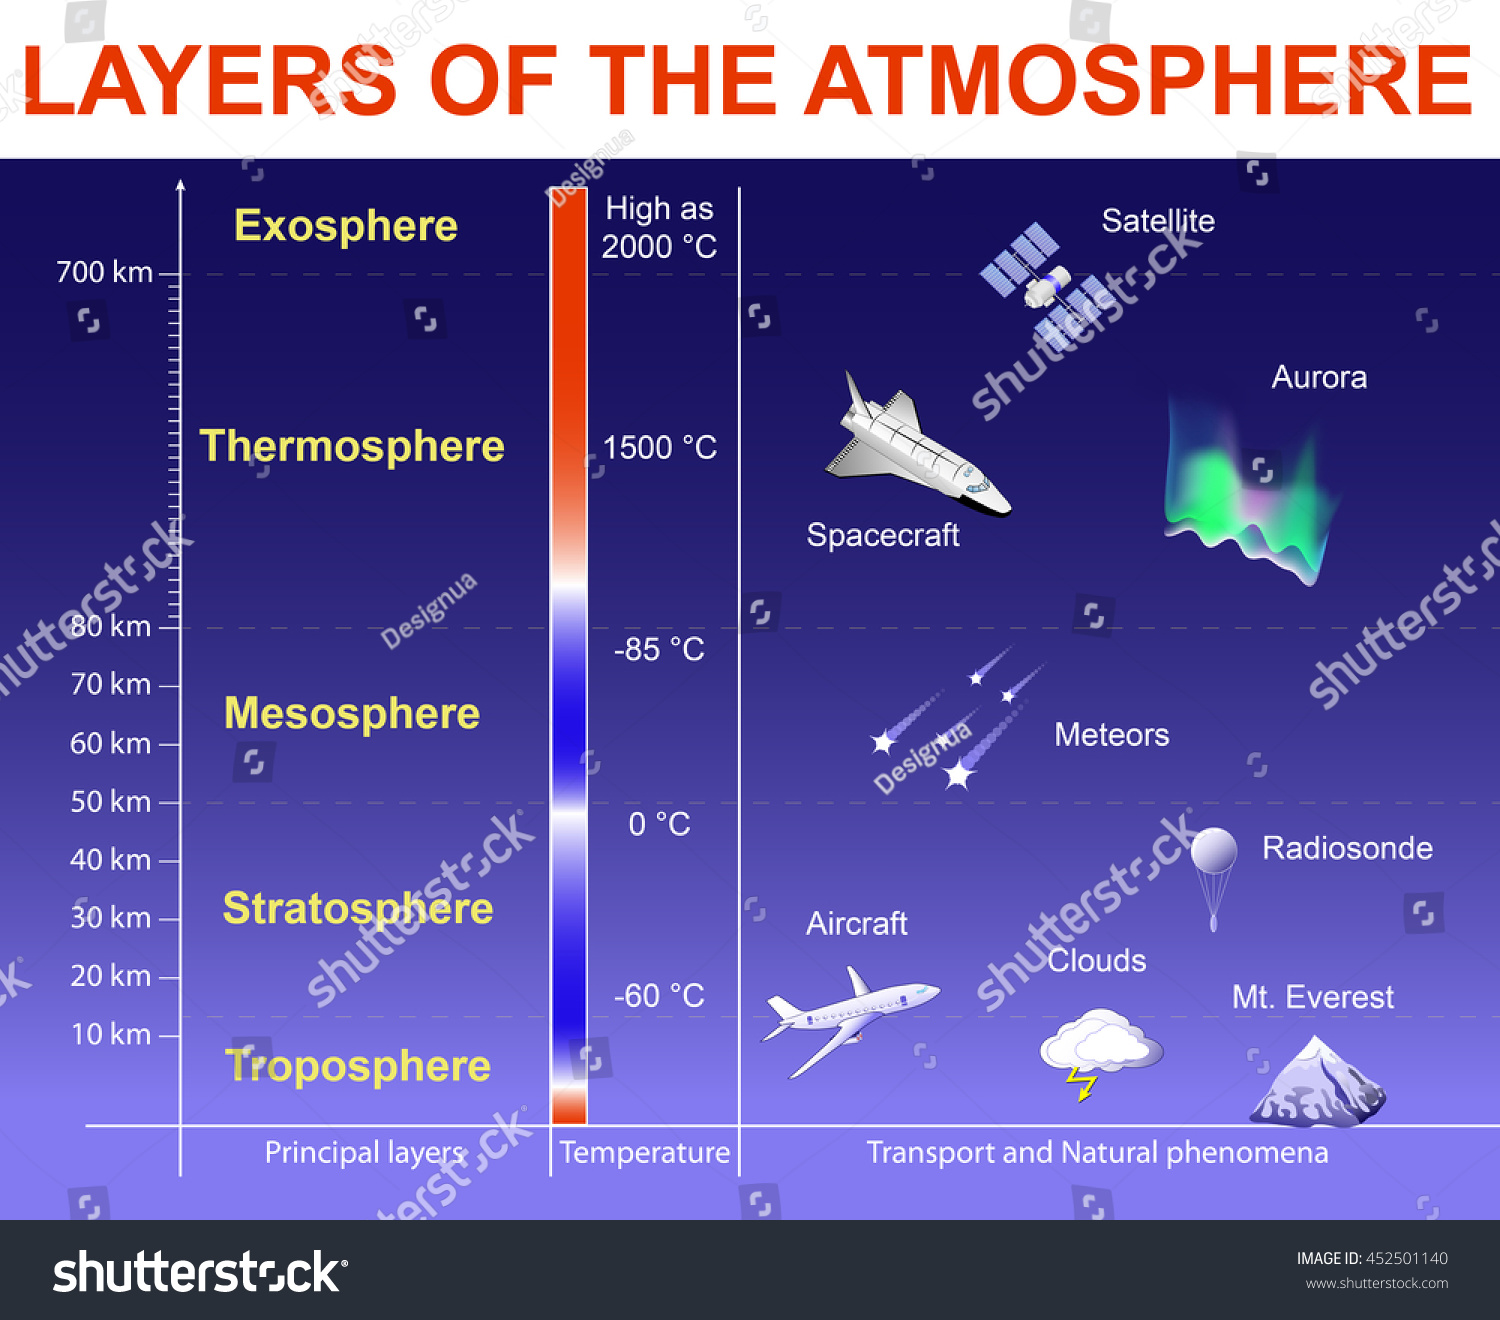 Layers Atmosphere Exosphere Thermosphere Mesosphere